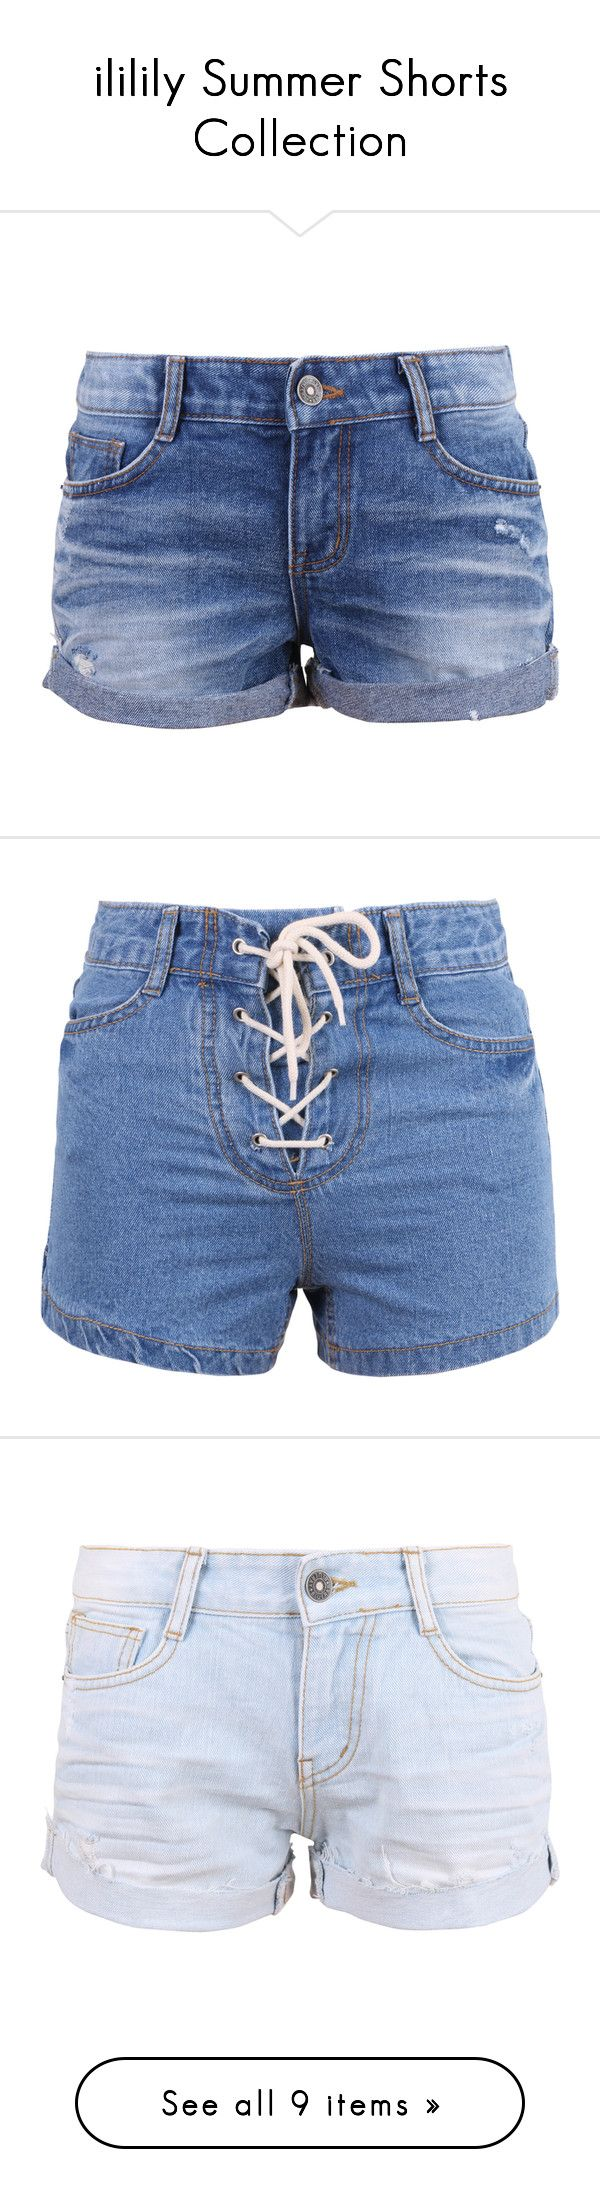 """""""ililily Summer Shorts Collection"""" by ililily ❤ liked on Polyvore featuring shorts, bottoms, denim, pants, vintage distressed shorts, roll up shorts, rolled shorts, torn shorts, vintage cut off shorts and high-waisted shorts"""